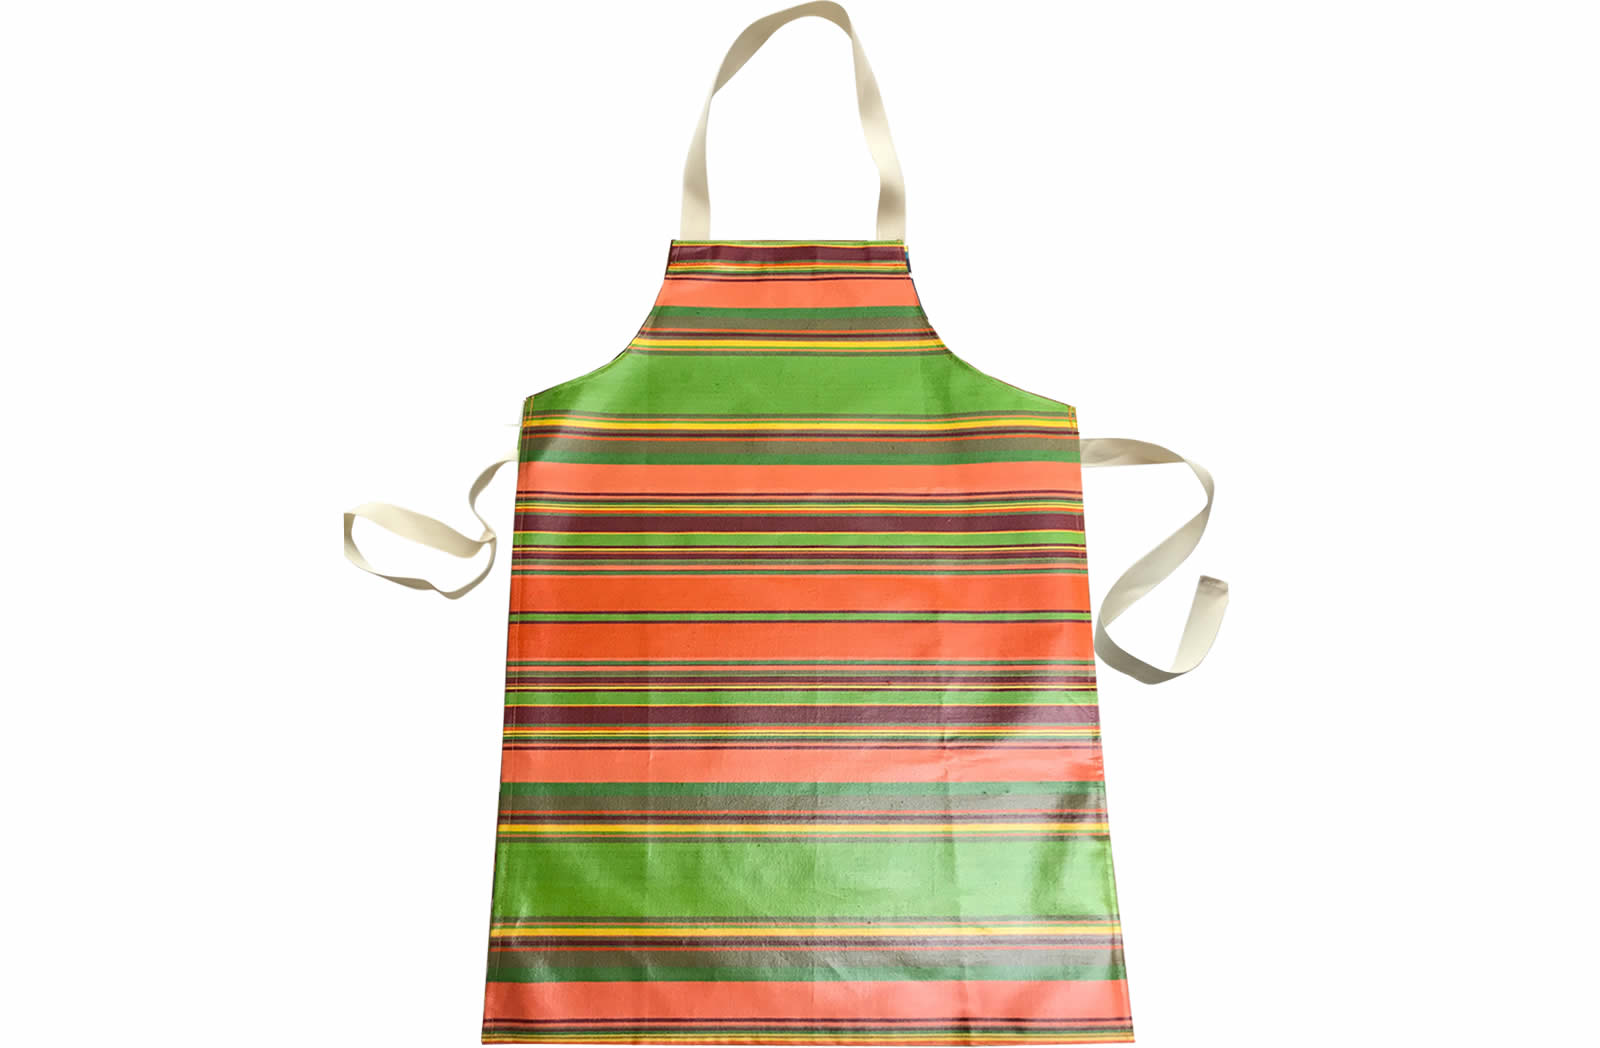 Coral Striped PVC Kids Aprons | Oilcloth Aprons for Children Coral  Bright Green  Terracotta  Stripes